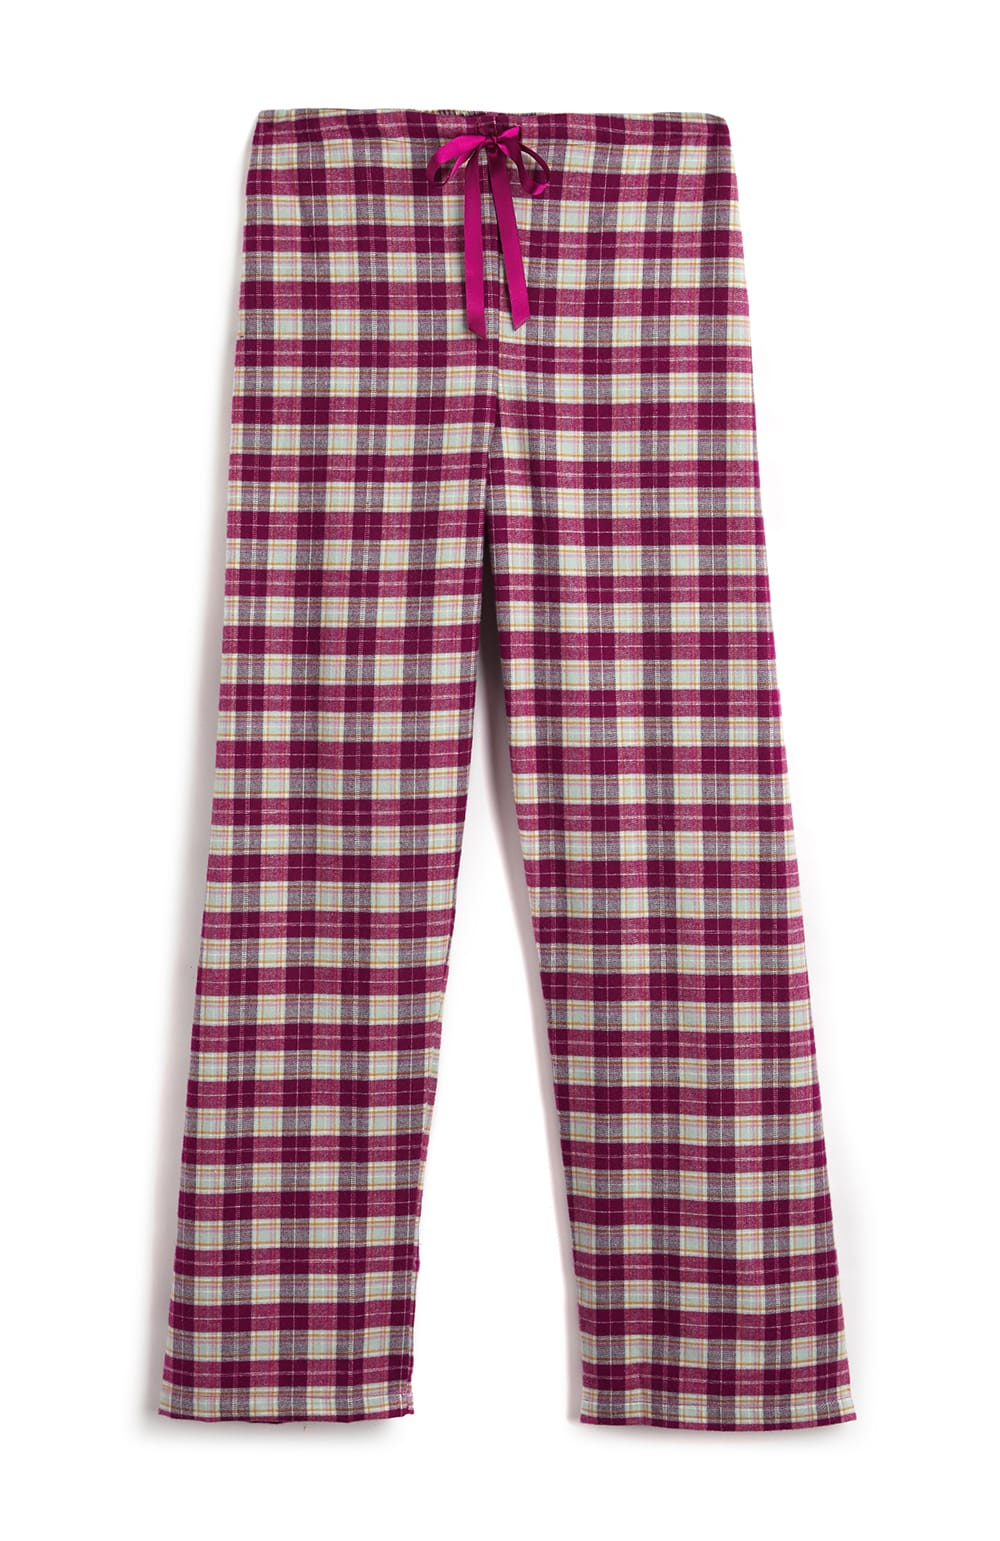 Brushed Tartan Pyjama Trousers (tltf) - Melbury | Bonsoir of London